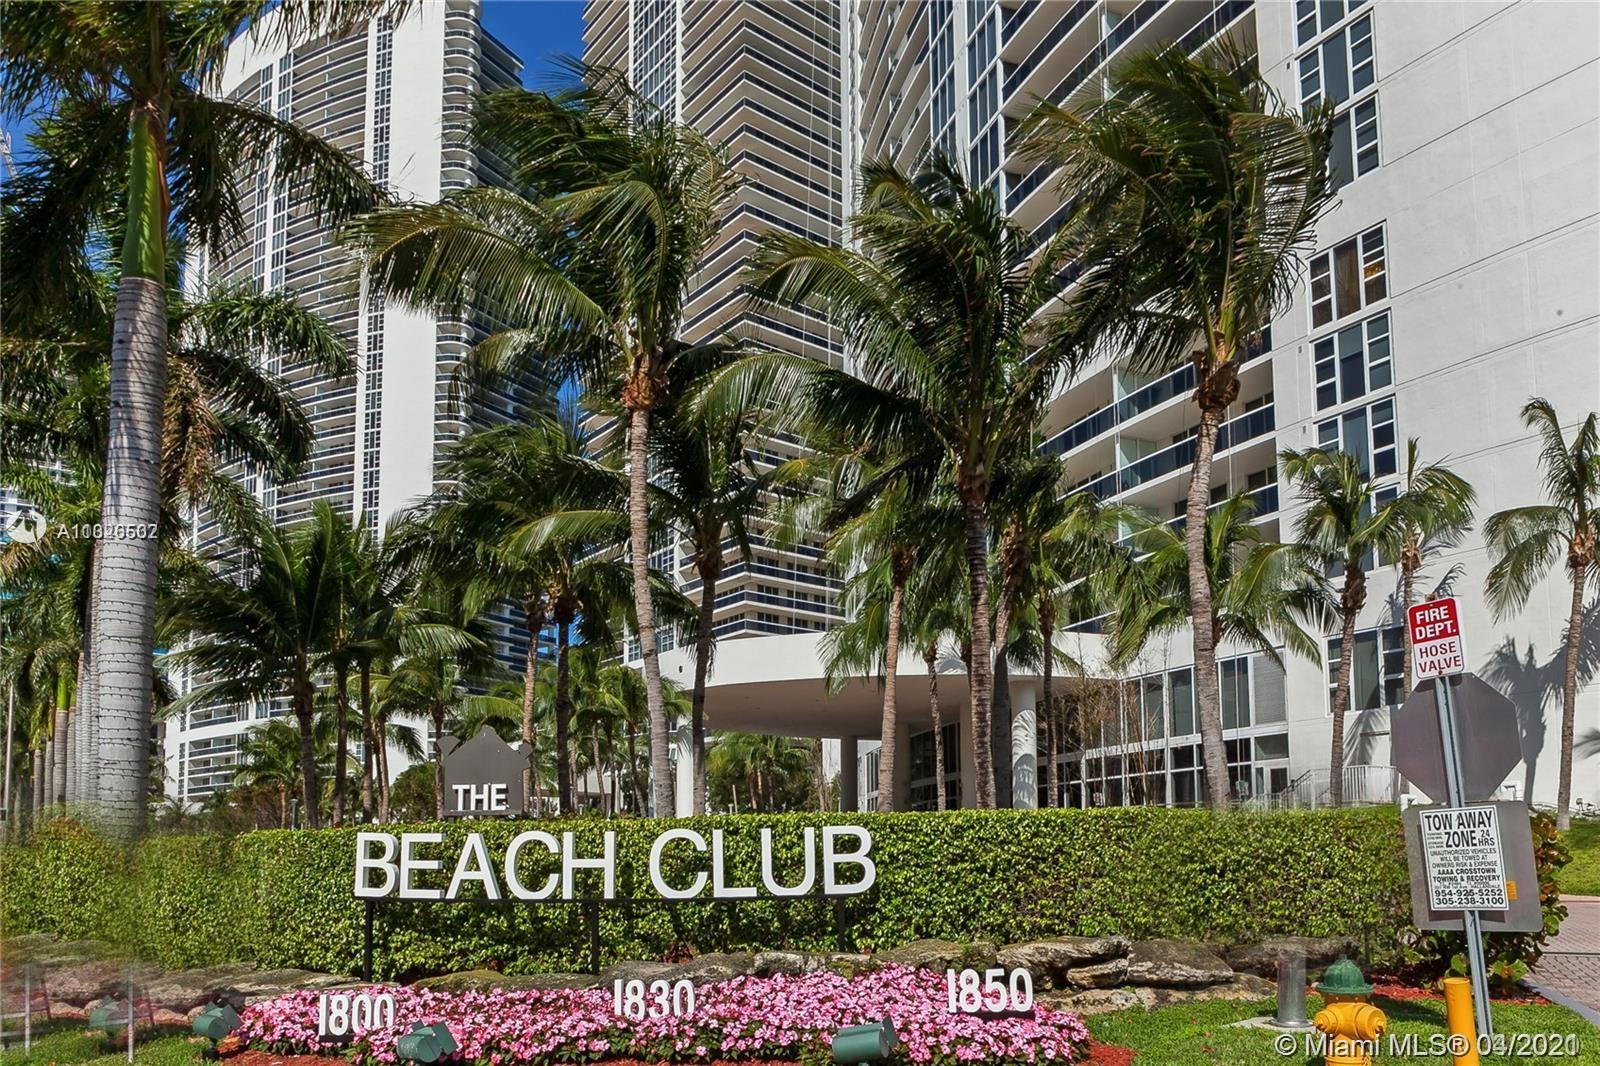 LARGE 2BEDS + DEN 3BATHS. OCEAN FRONT BUILDING WITH 5 STAR RESORT STYLE AMENITIES. SUSH AS  FITNESS